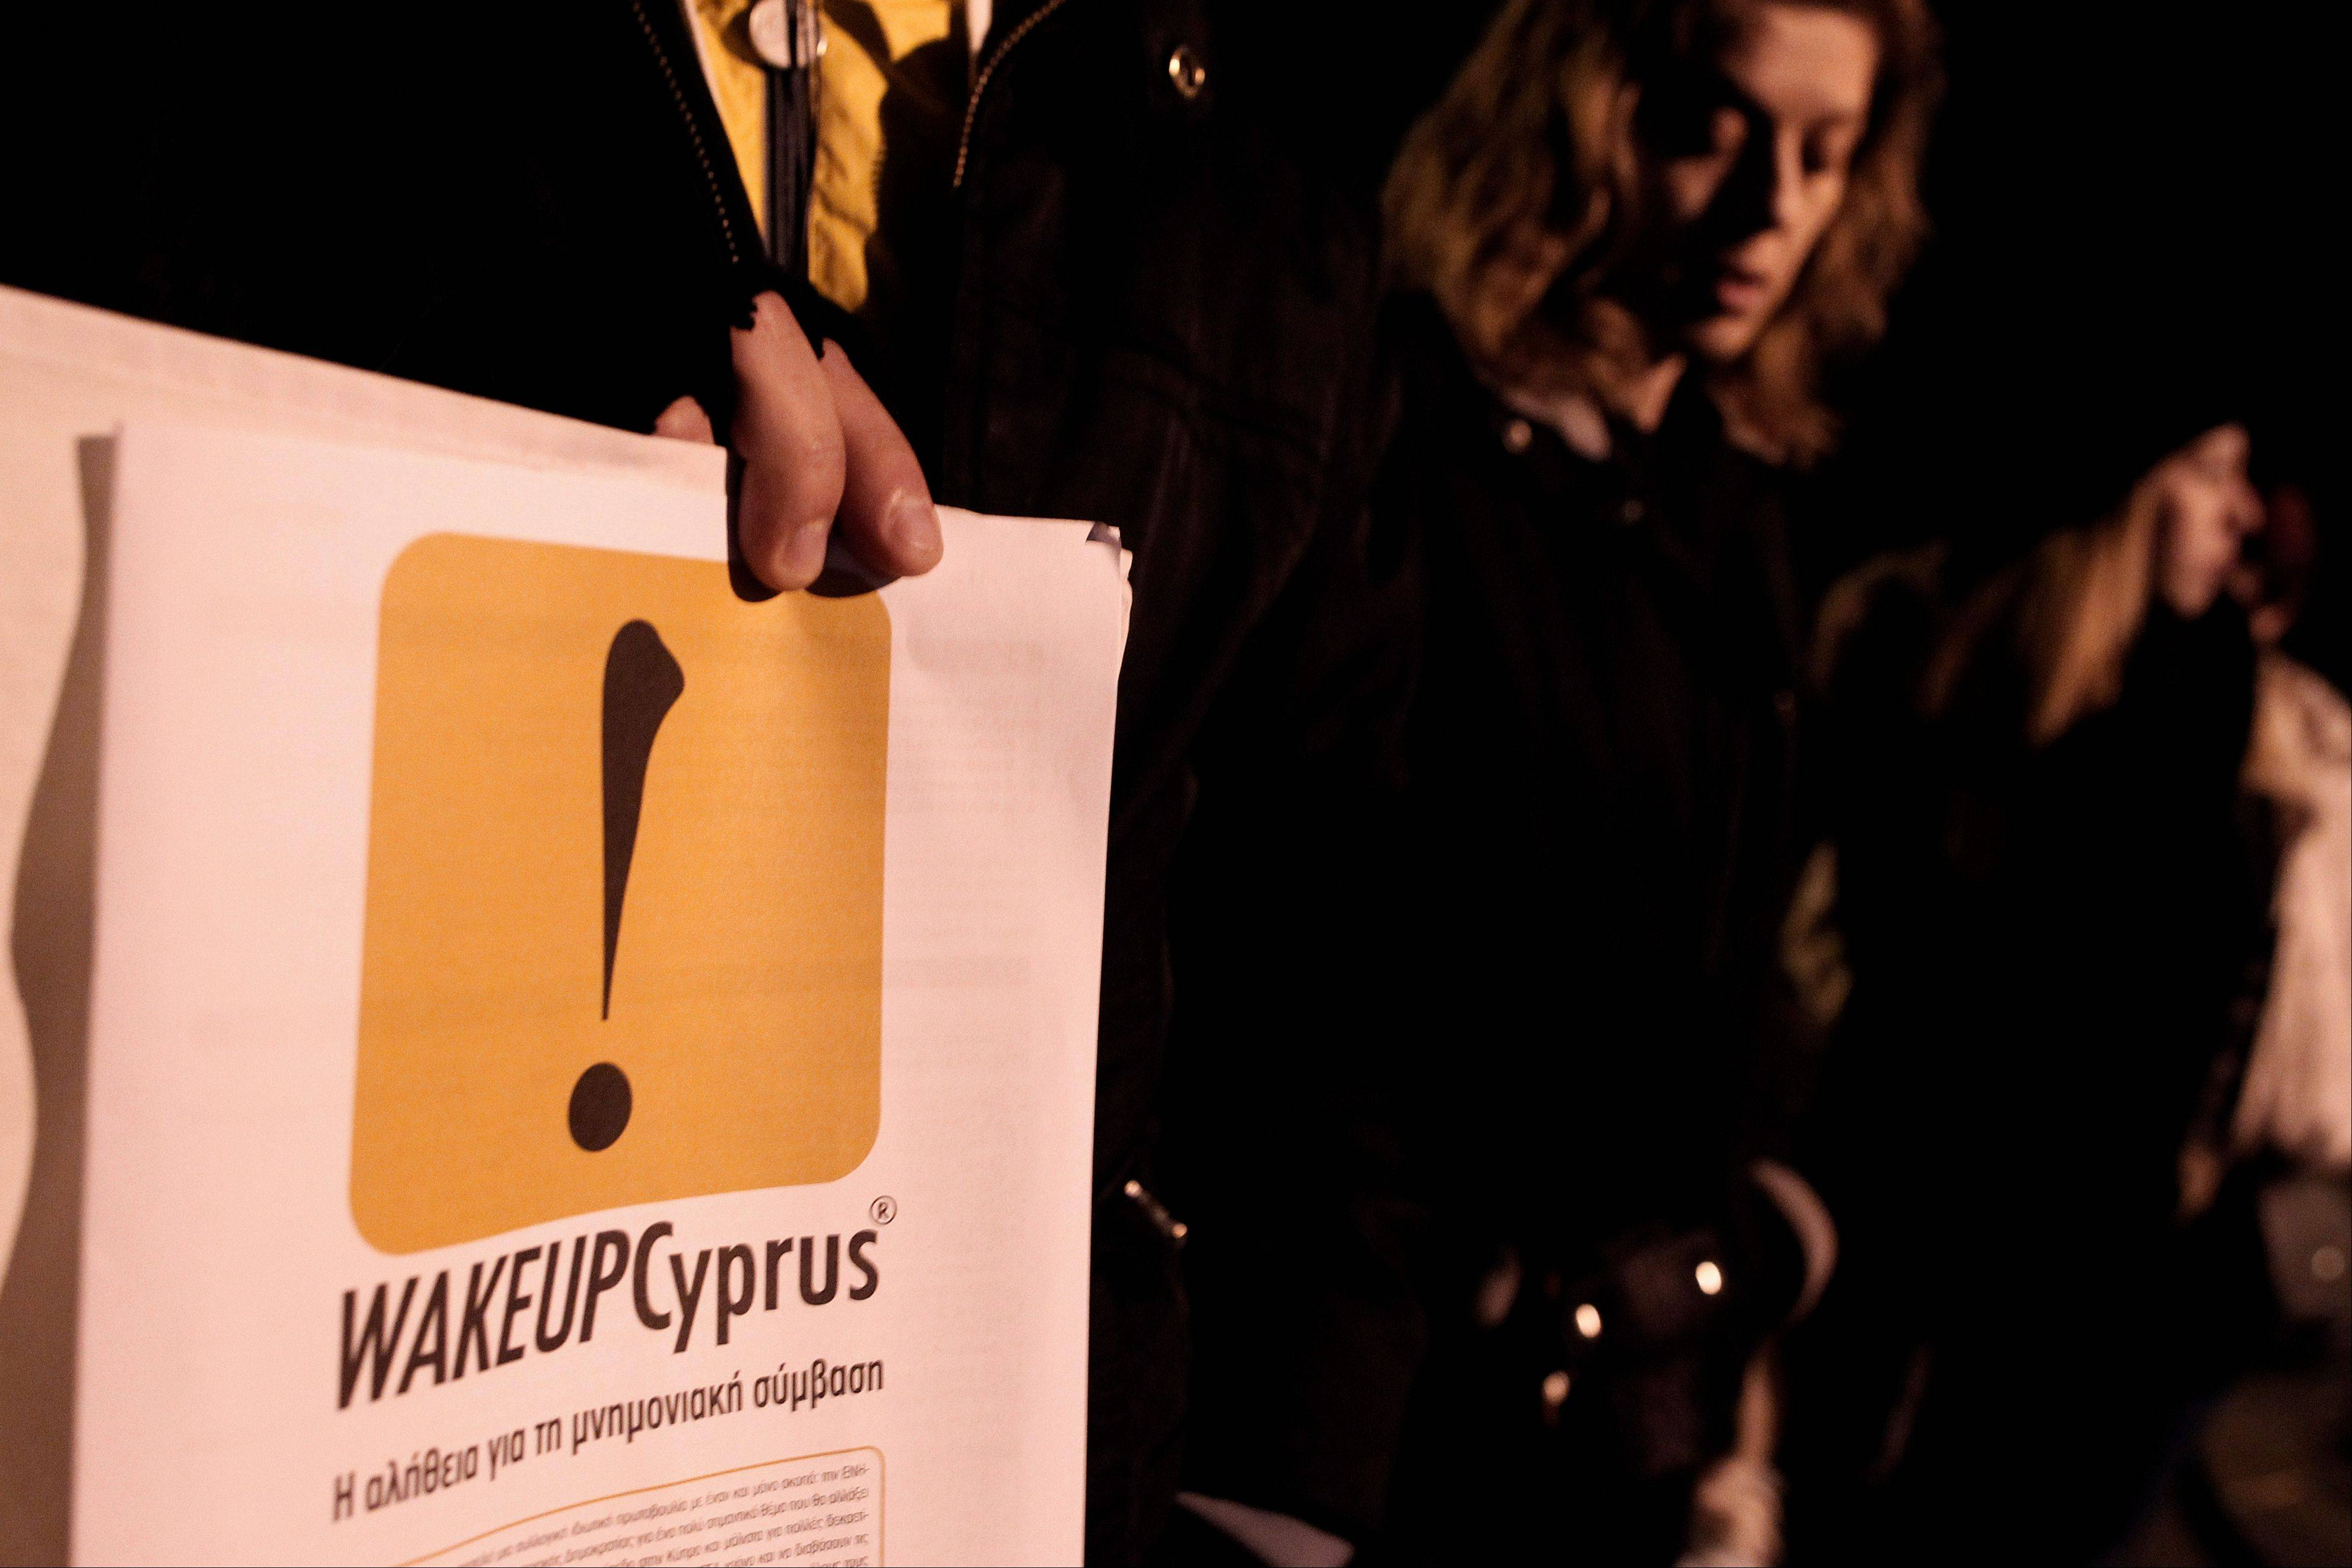 Protesters take part in an anti-bailout rally outside the Cyprus Presidential palace in Nicosia Sunday. Cyprus secured a package of rescue loans in tense, last-ditch negotiations early Monday, two EU diplomats said, saving the country from a banking system collapse and bankruptcy.